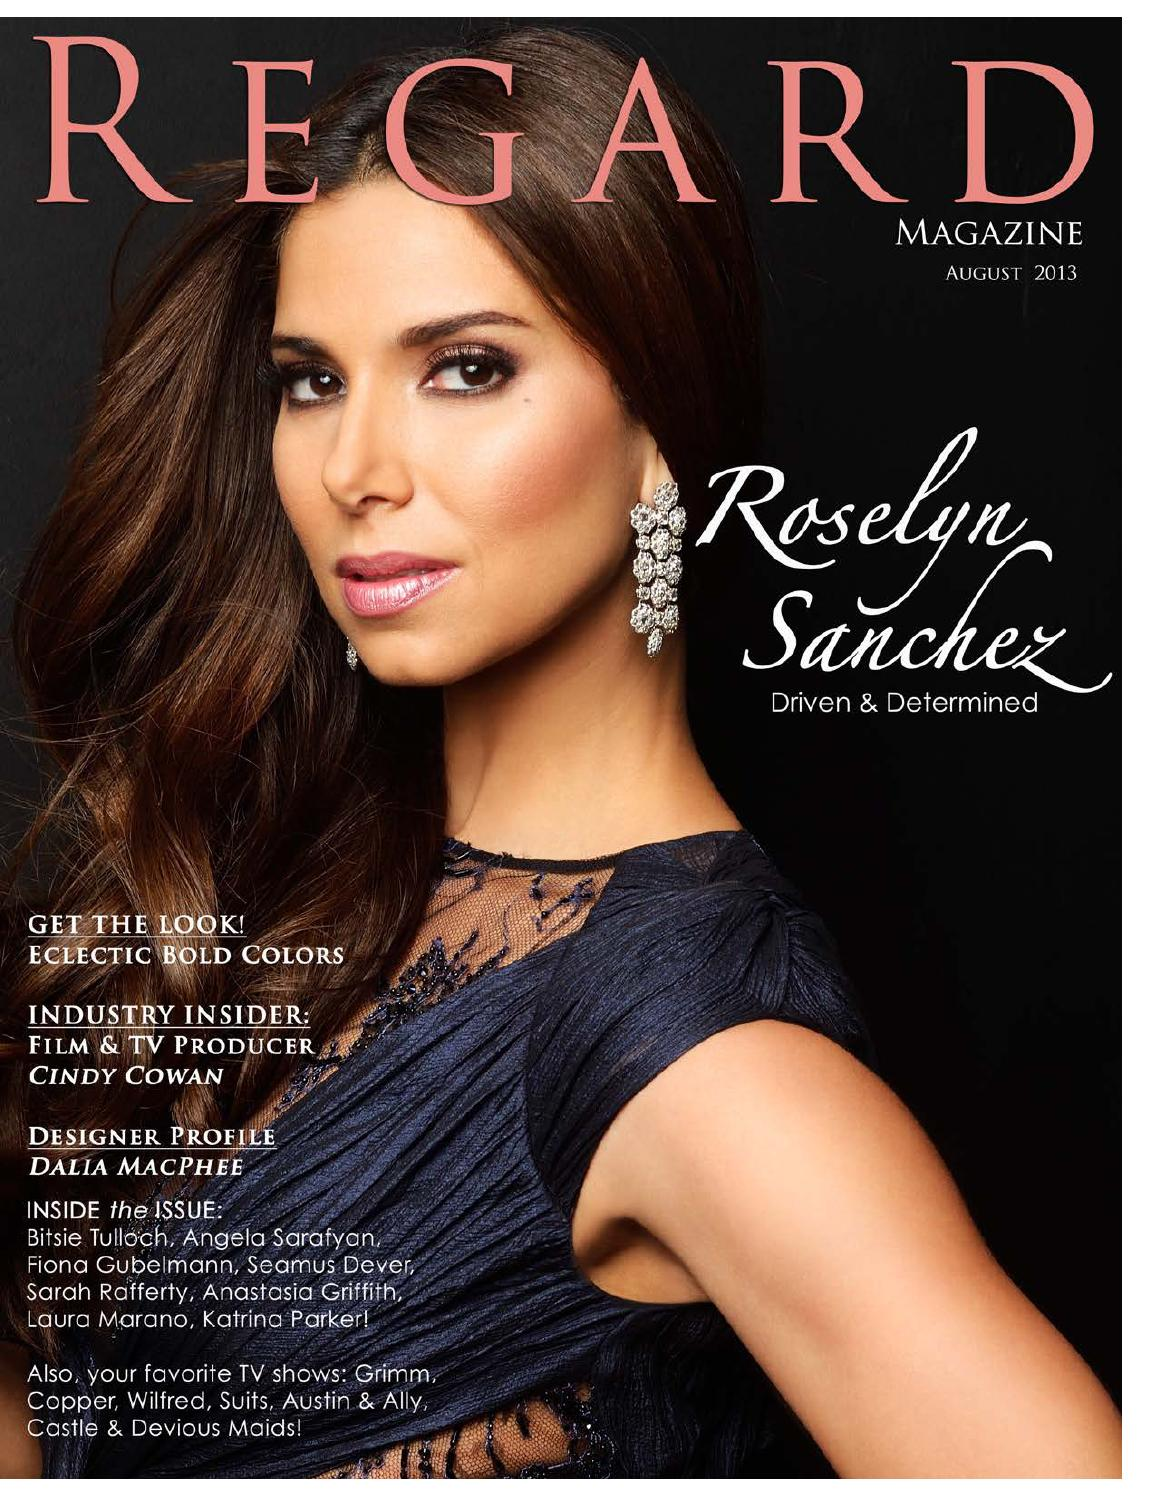 21 regard magazine august 2013regard magazine, llc - issuu